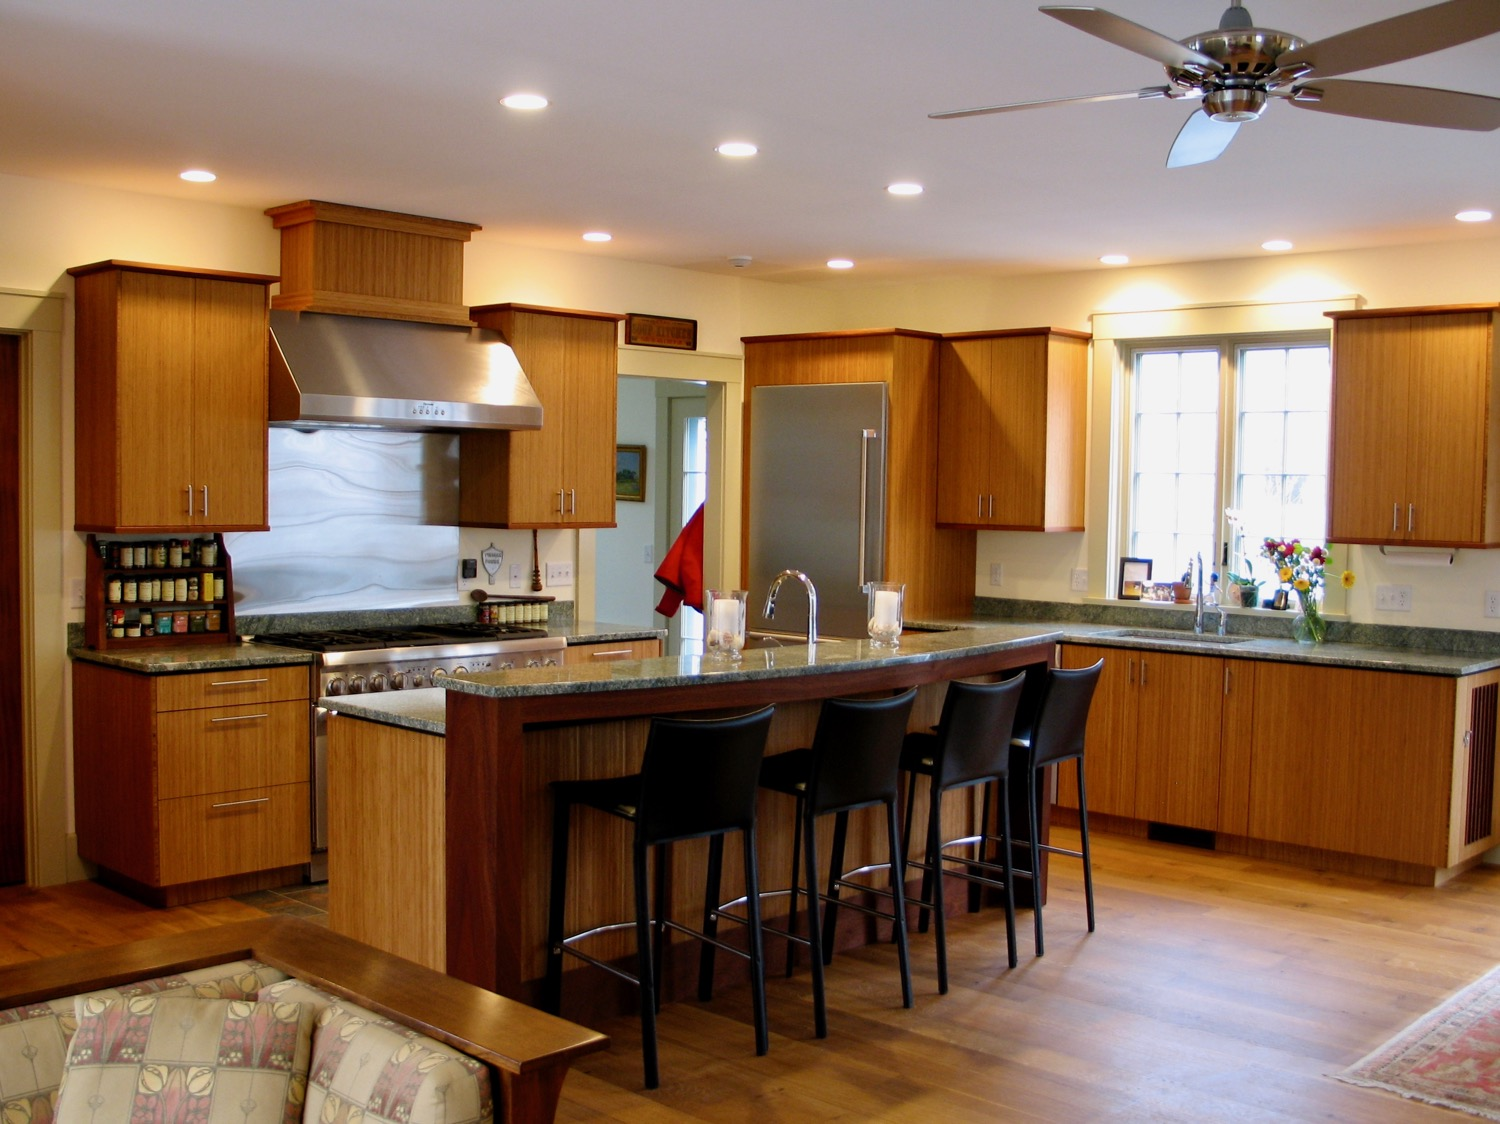 Kelley's - bamboo and sapele kitchen